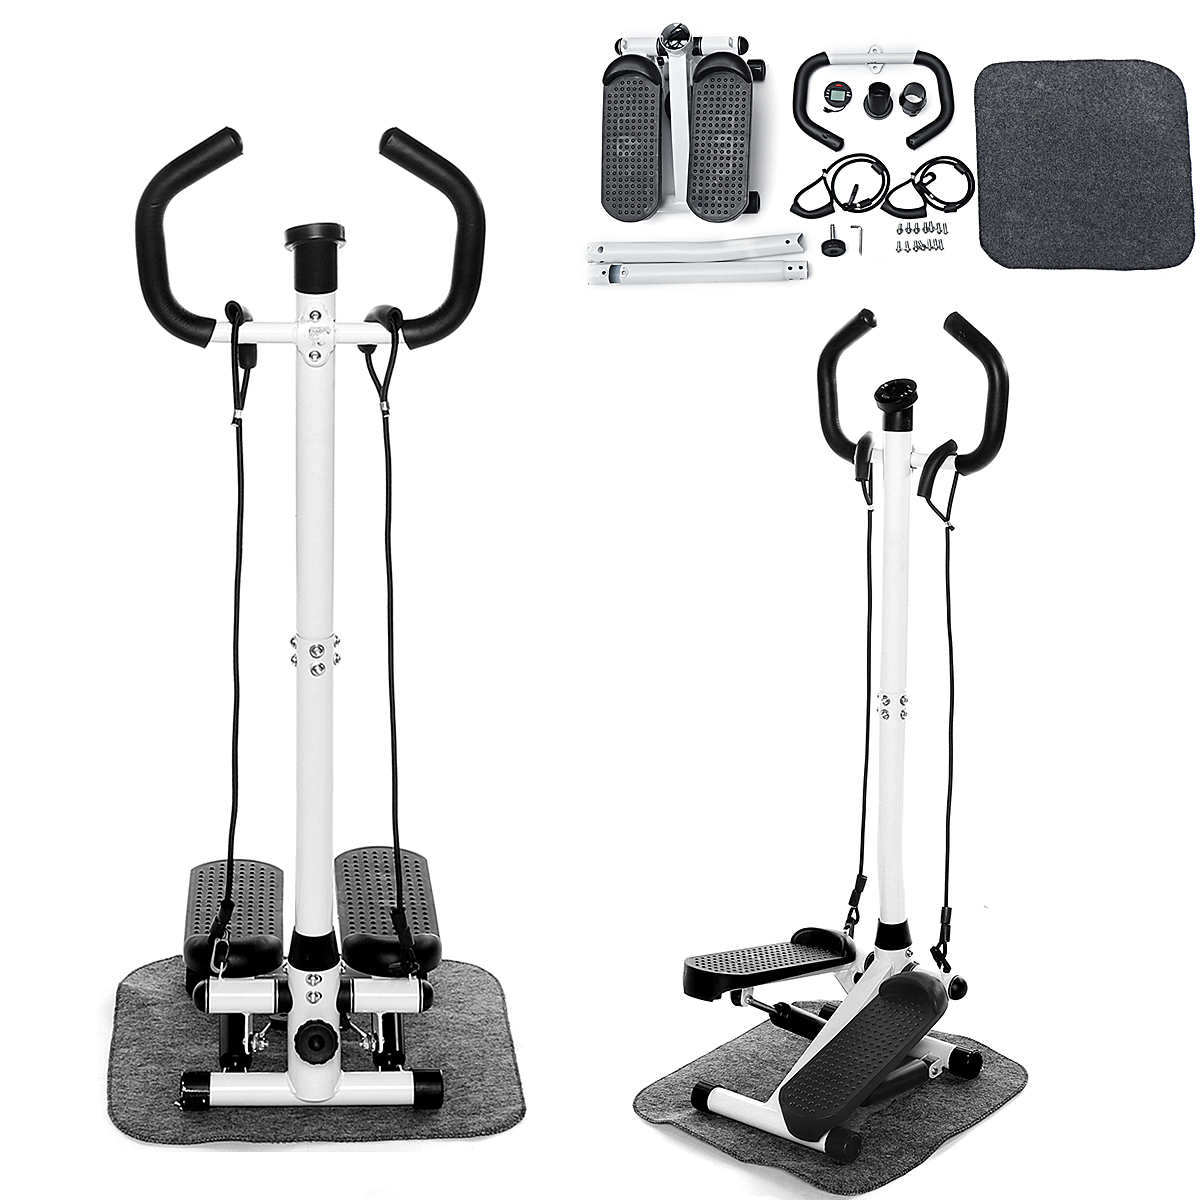 Details about  /Twist Stair Stepper W// Handle Bars LCD Monitor Display Cardio Aerobic Machine US